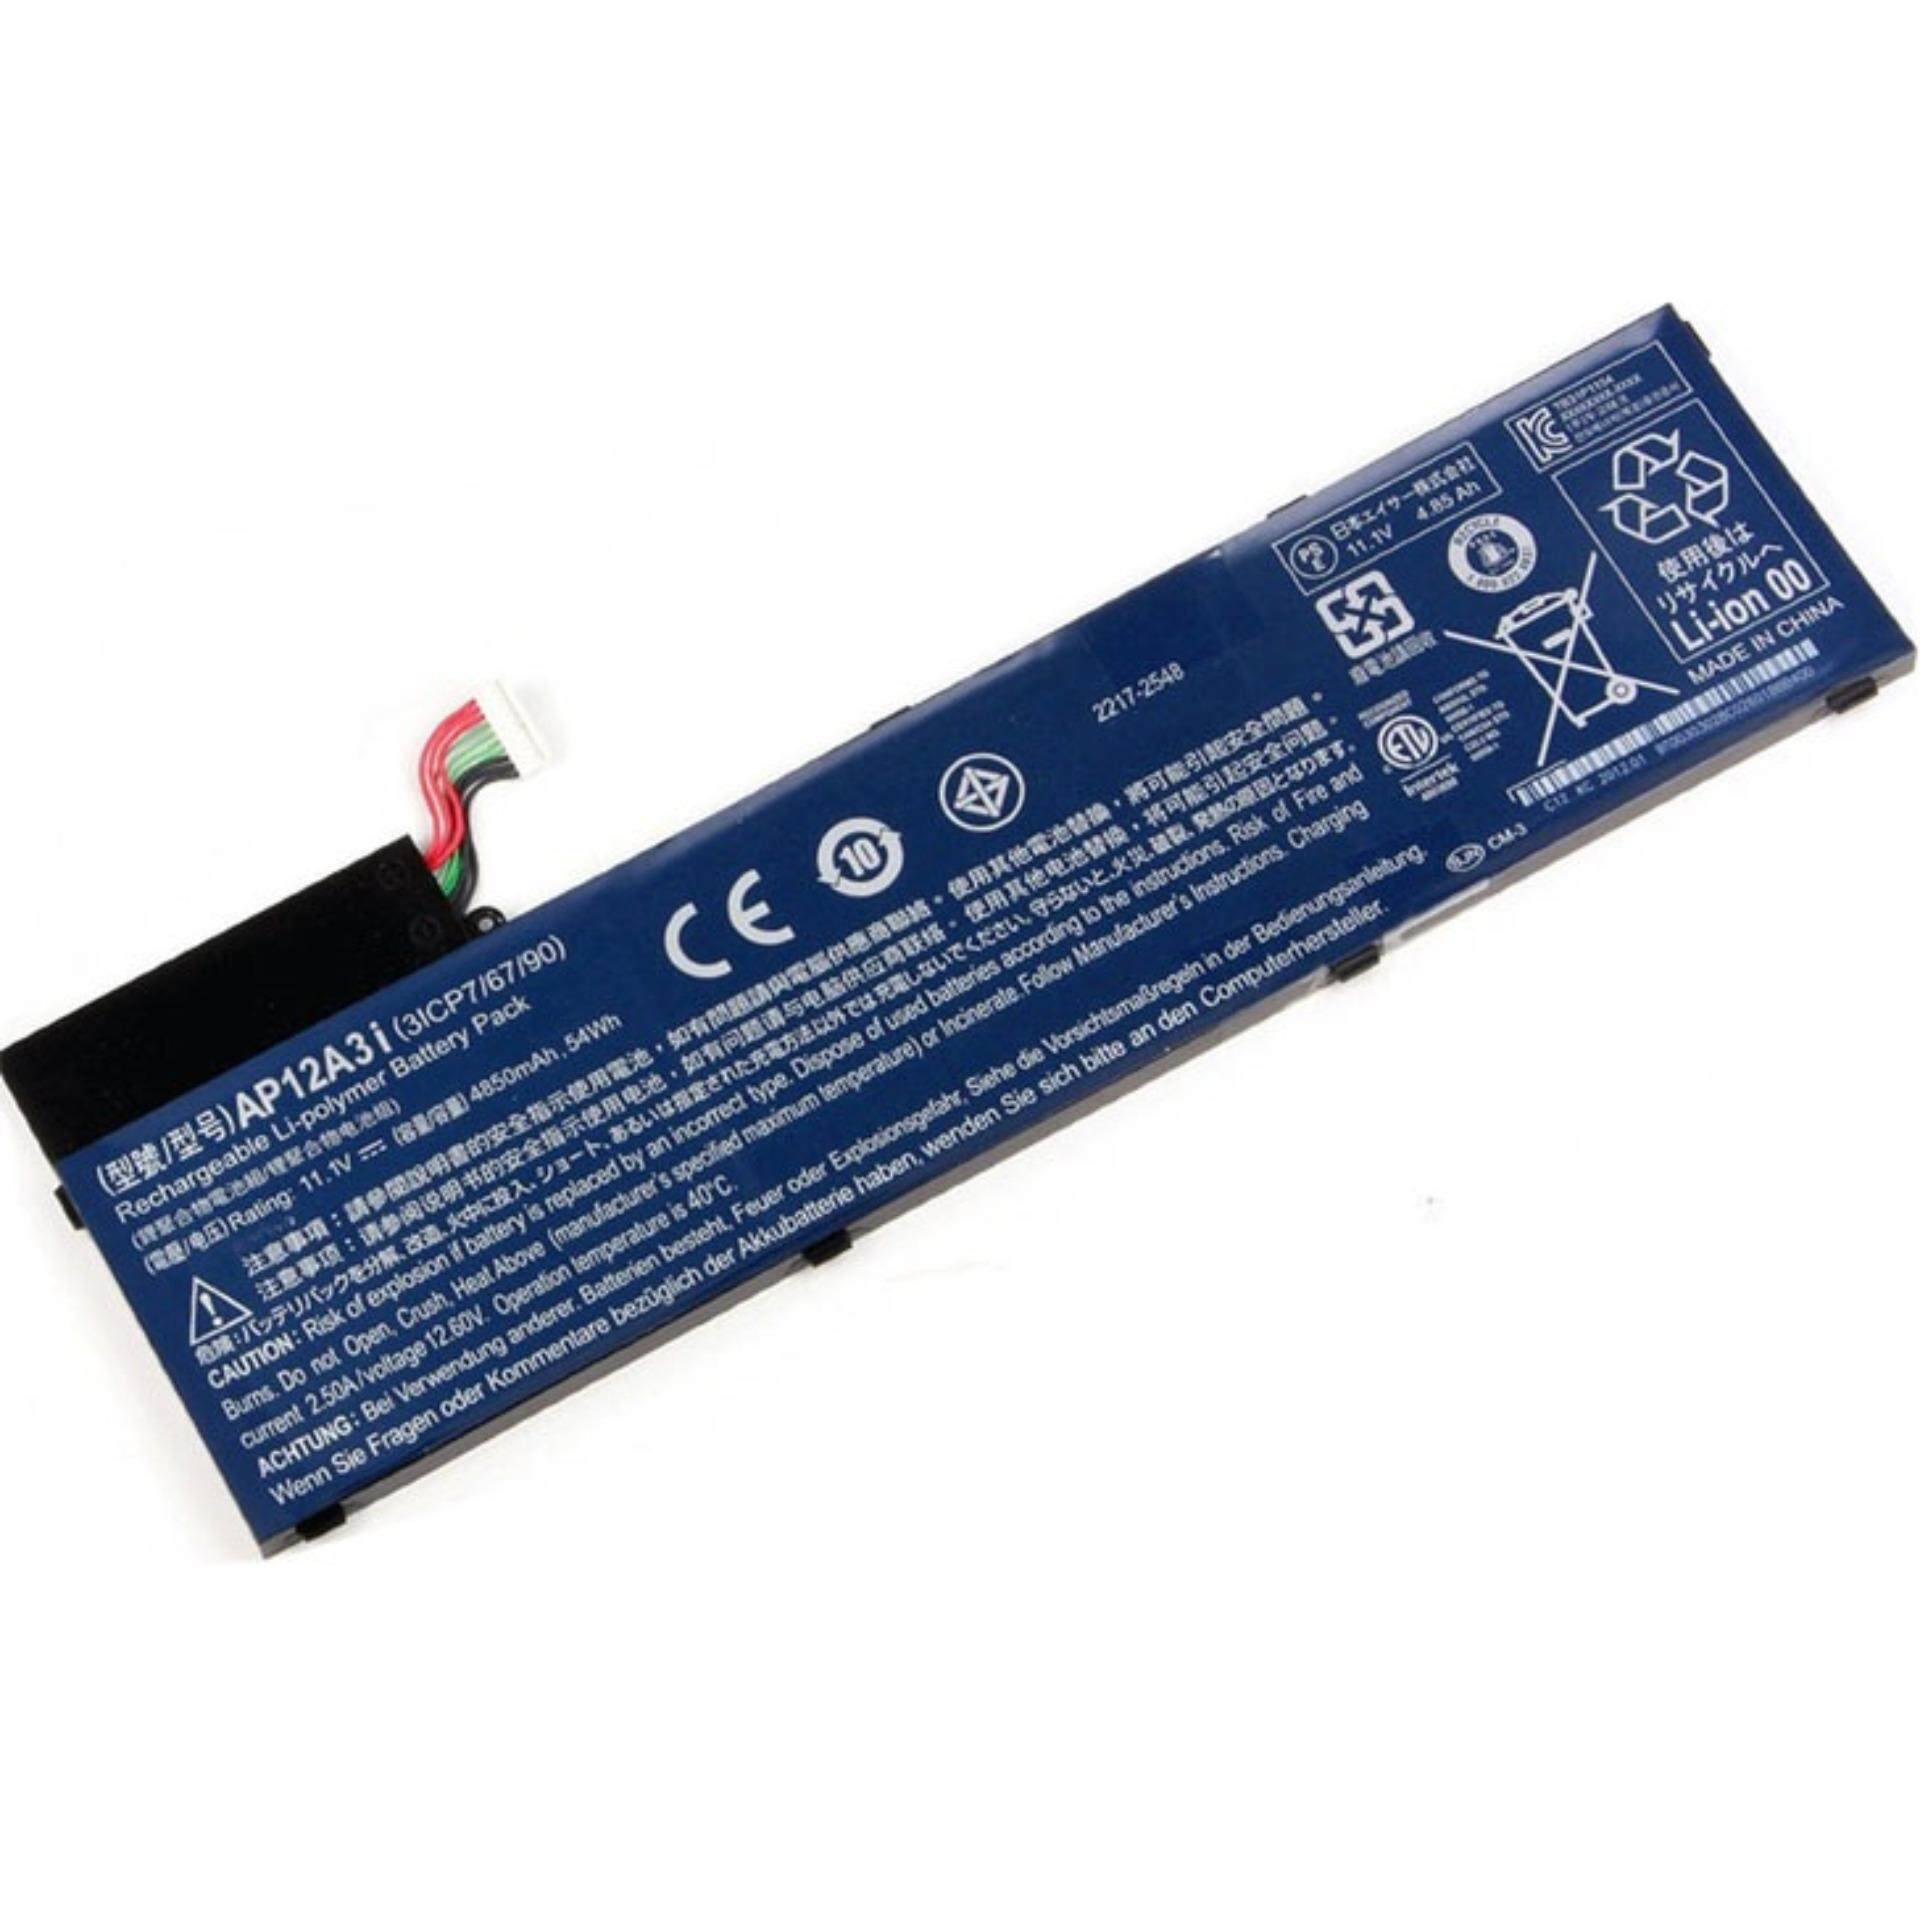 Acer Aspire M5-481T Series TIMELINE ULTRA Laptop Battery